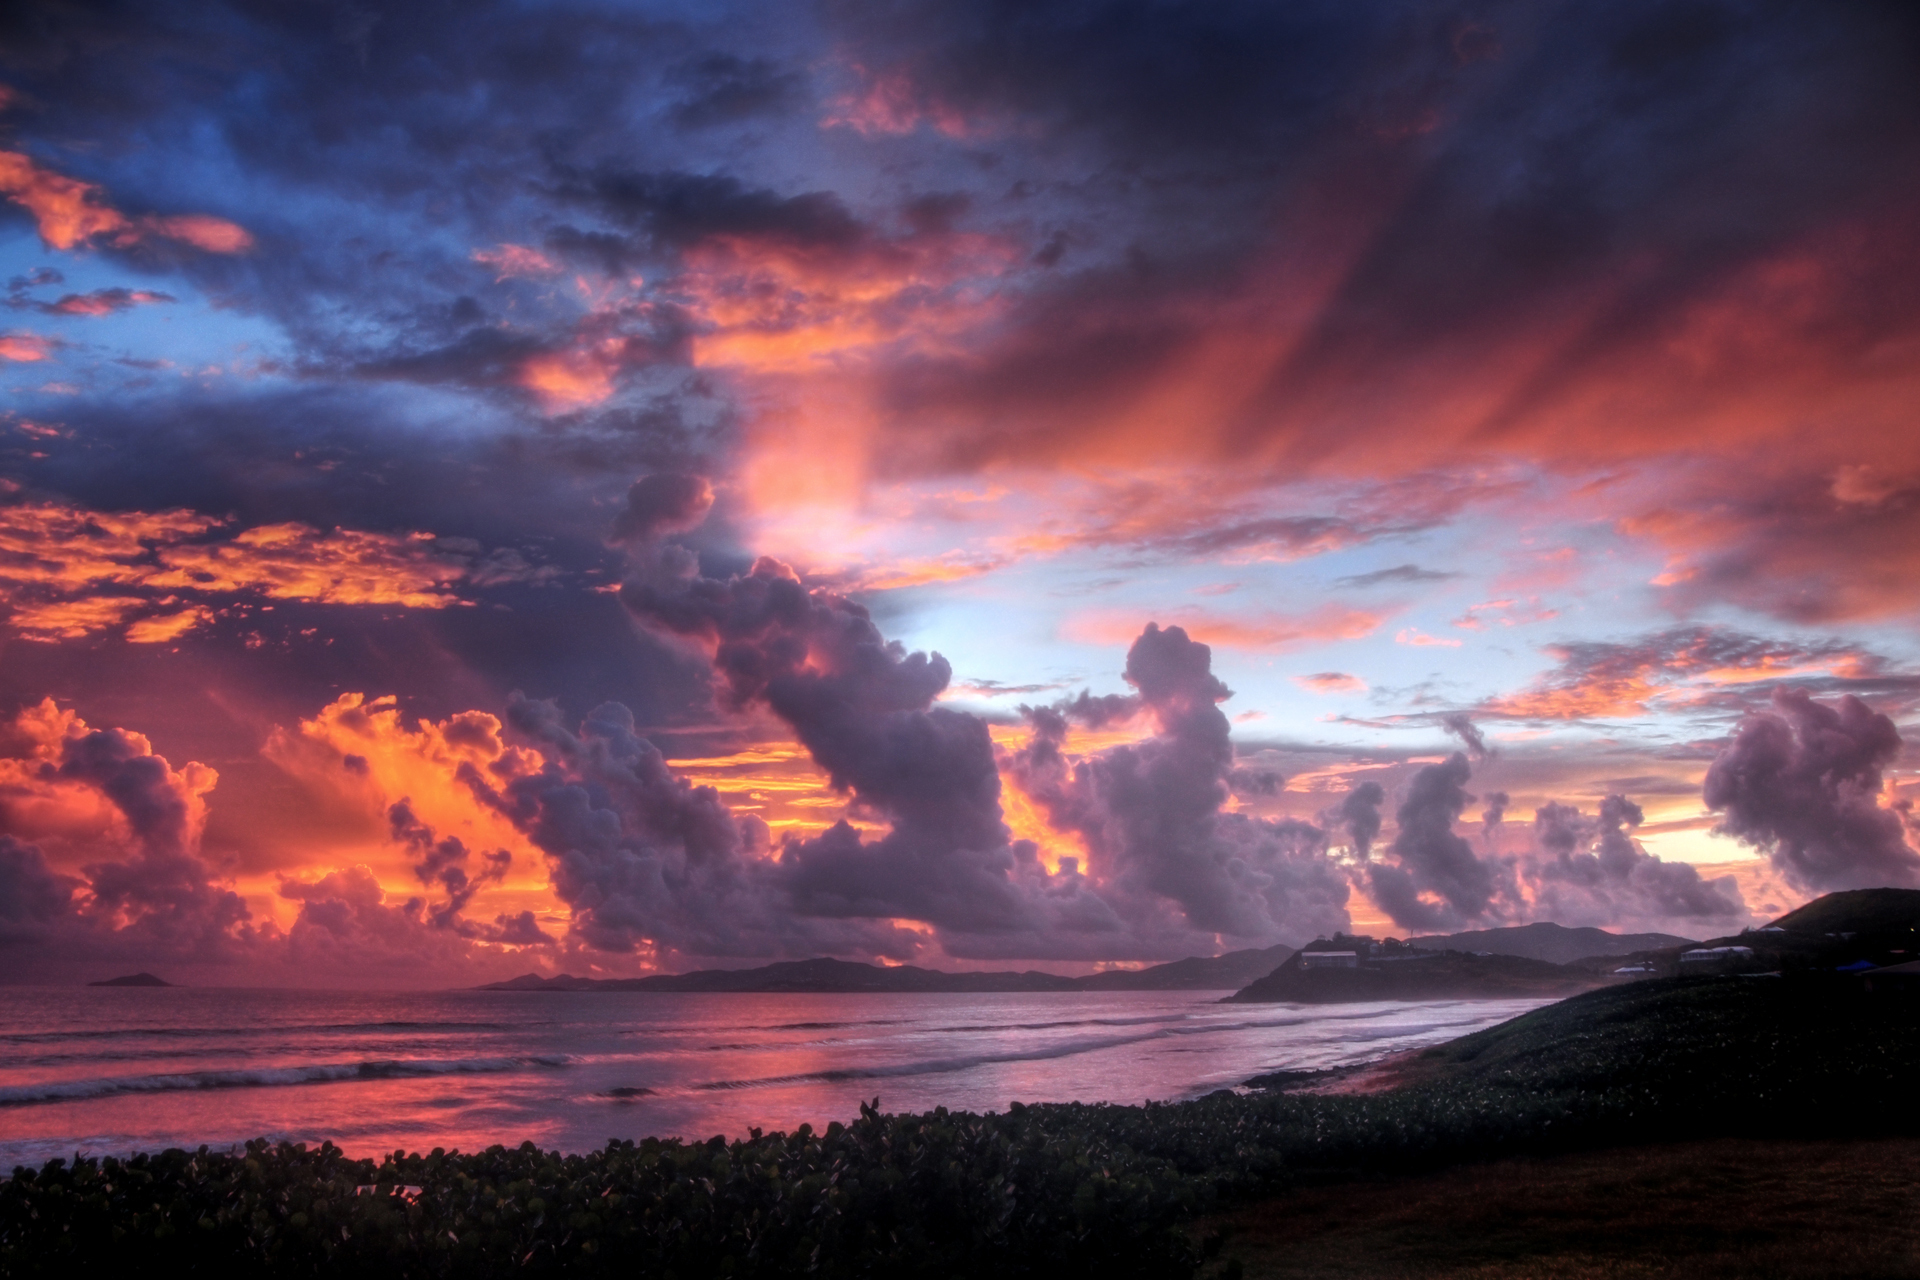 Sunset, Sky, Clouds, Color, Sea, Beach, Nature wallpapers 1688